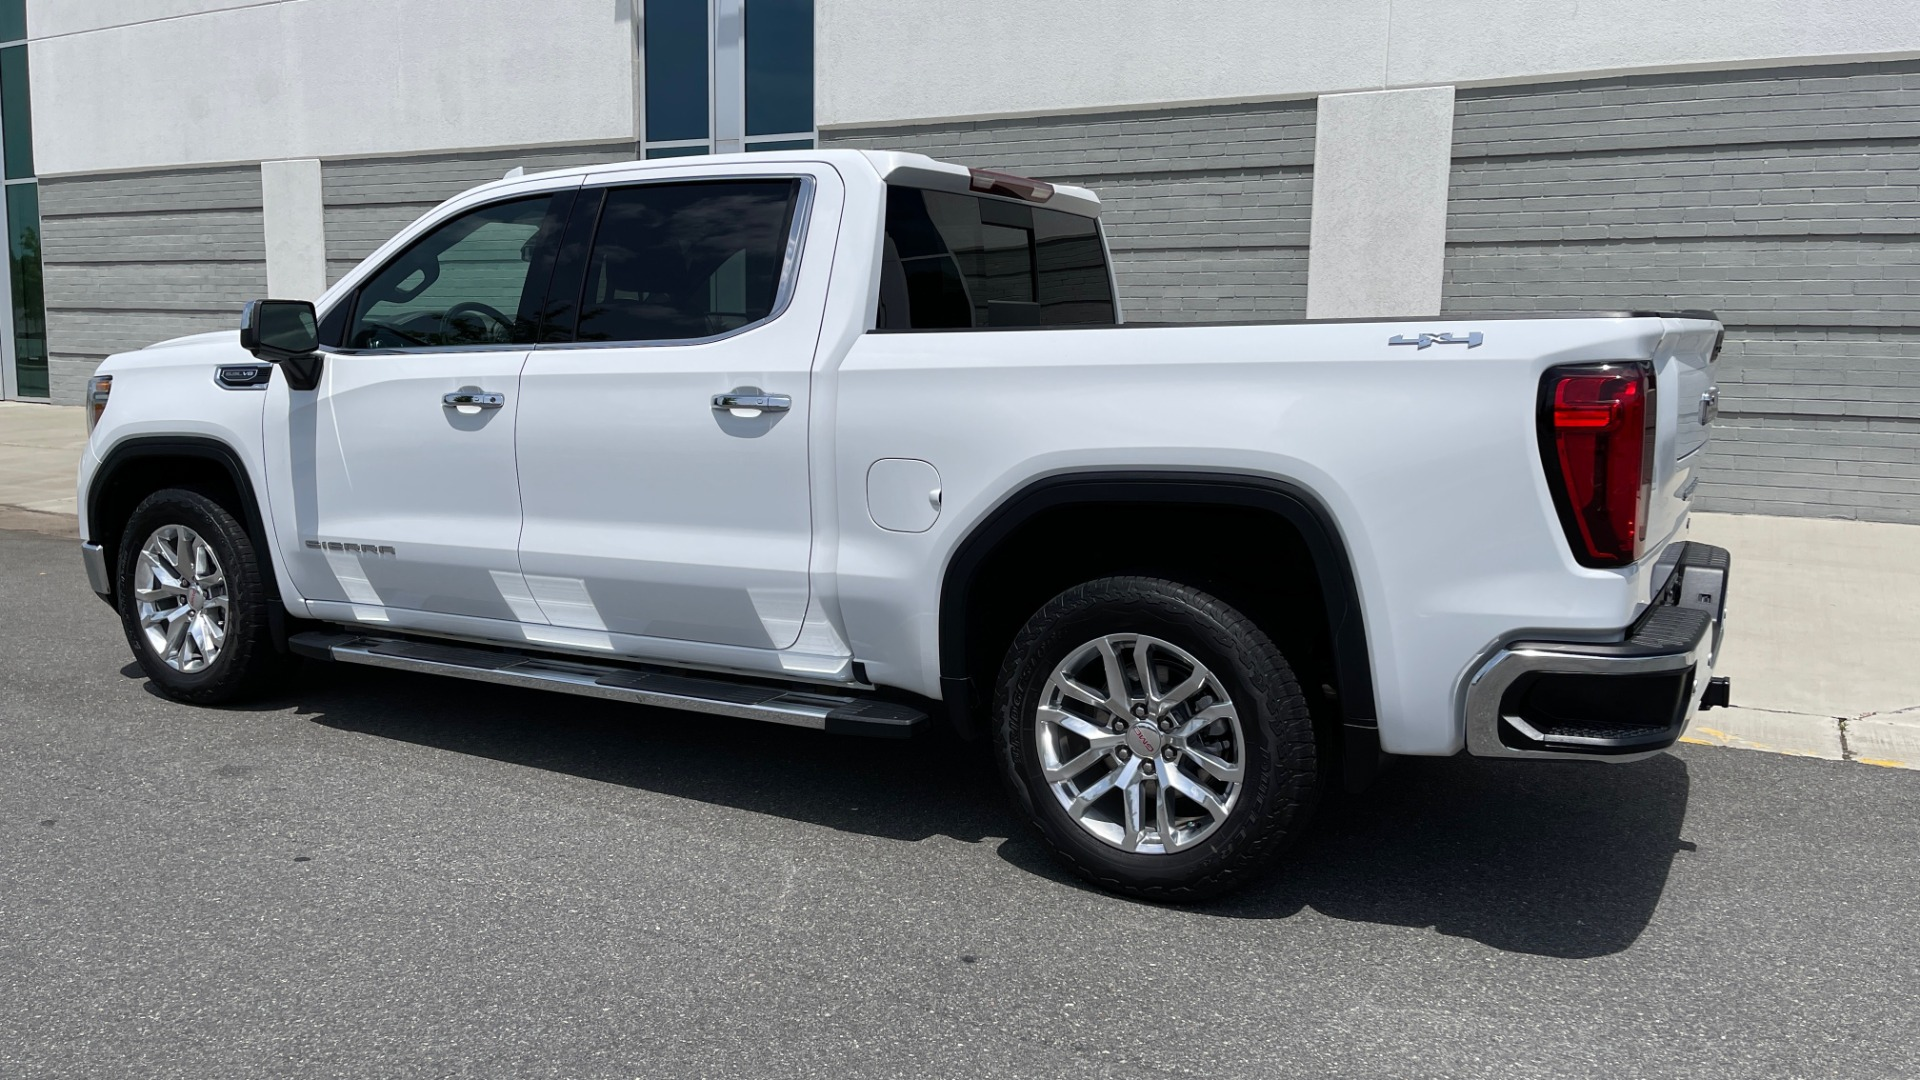 Used 2019 GMC SIERRA 1500 SLT 4X4 CREWCAB / 5.3L V8 / 8-SPD AUTO / NAV / BOSE / REARVIEW for sale $49,999 at Formula Imports in Charlotte NC 28227 5